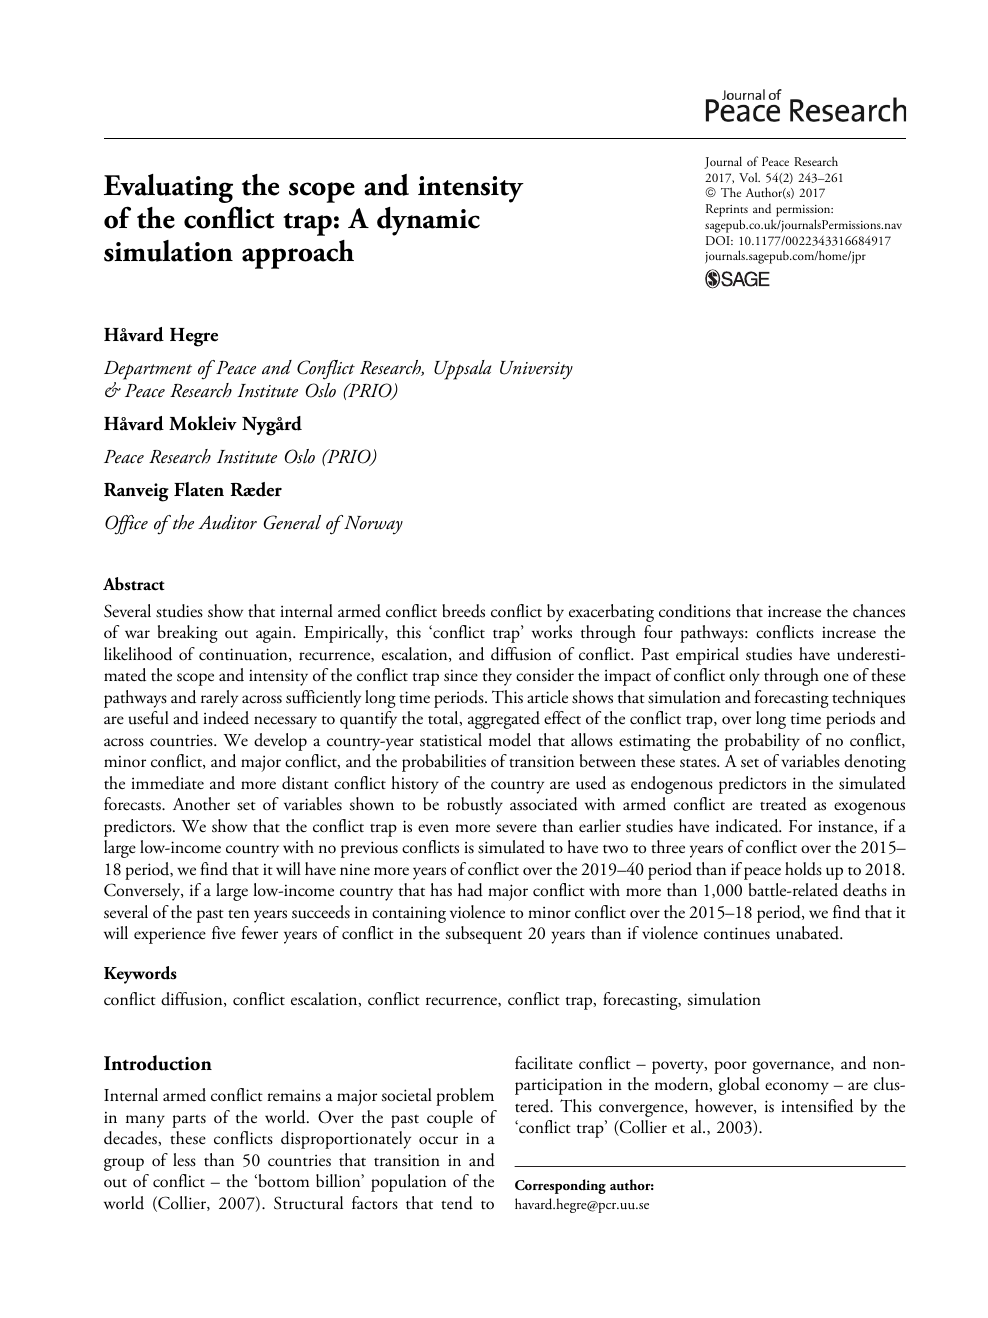 Evaluating the scope and intensity of the conflict trap – topic of